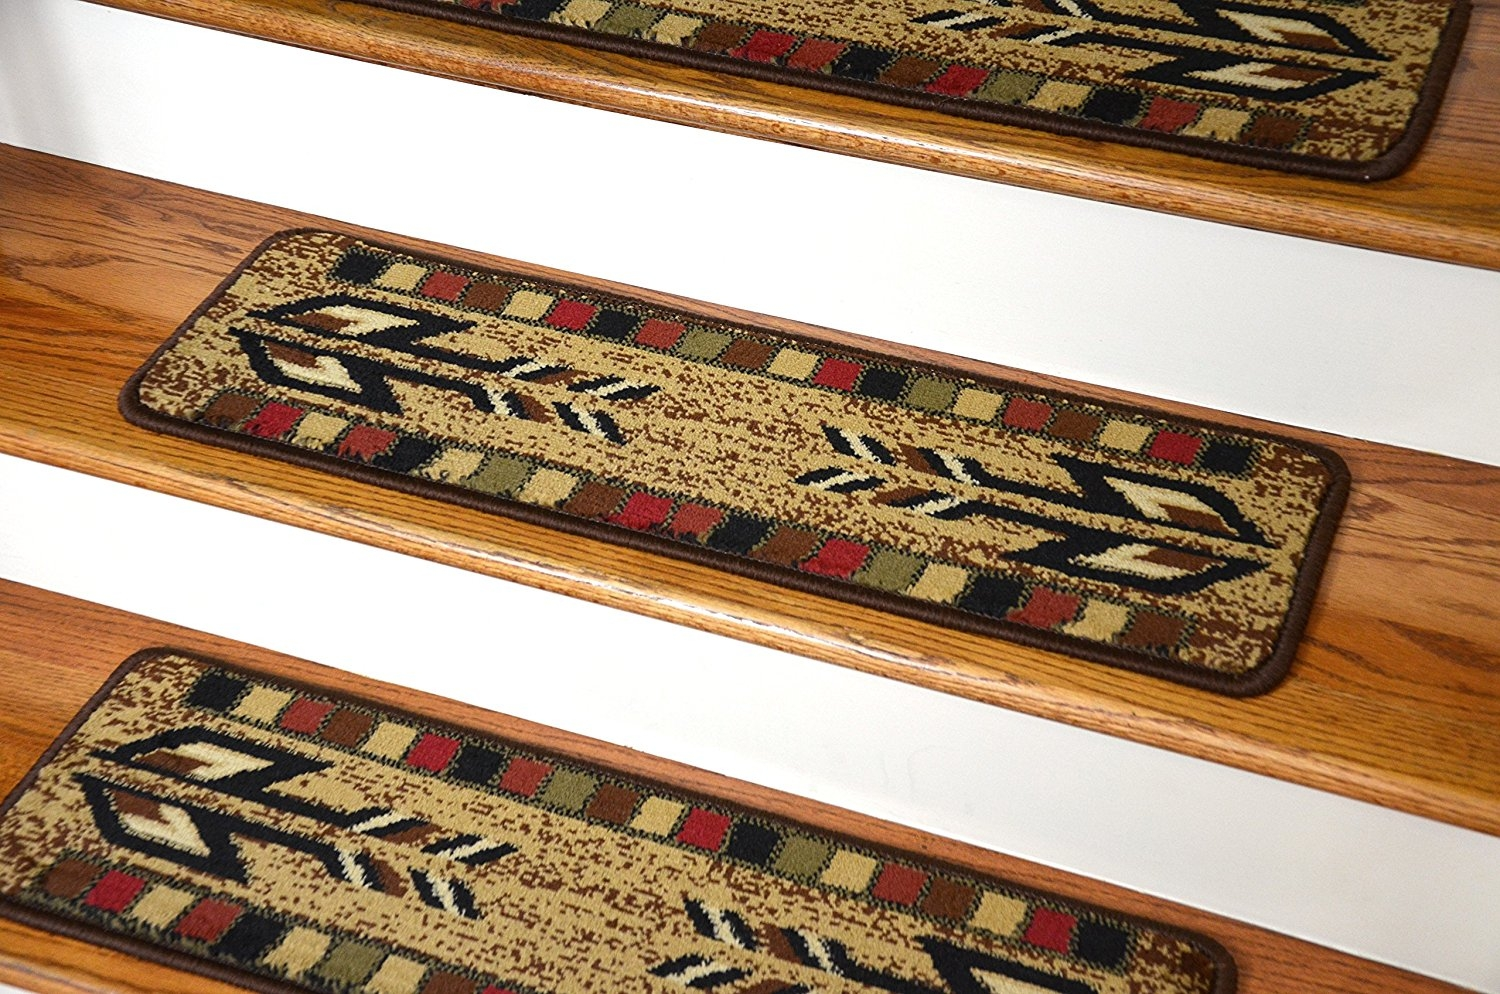 Dean Premium Carpet Stair Treads Santa Fe Beige 31 X 9 Set Of In Premium Carpet Stair Treads (Image 7 of 15)